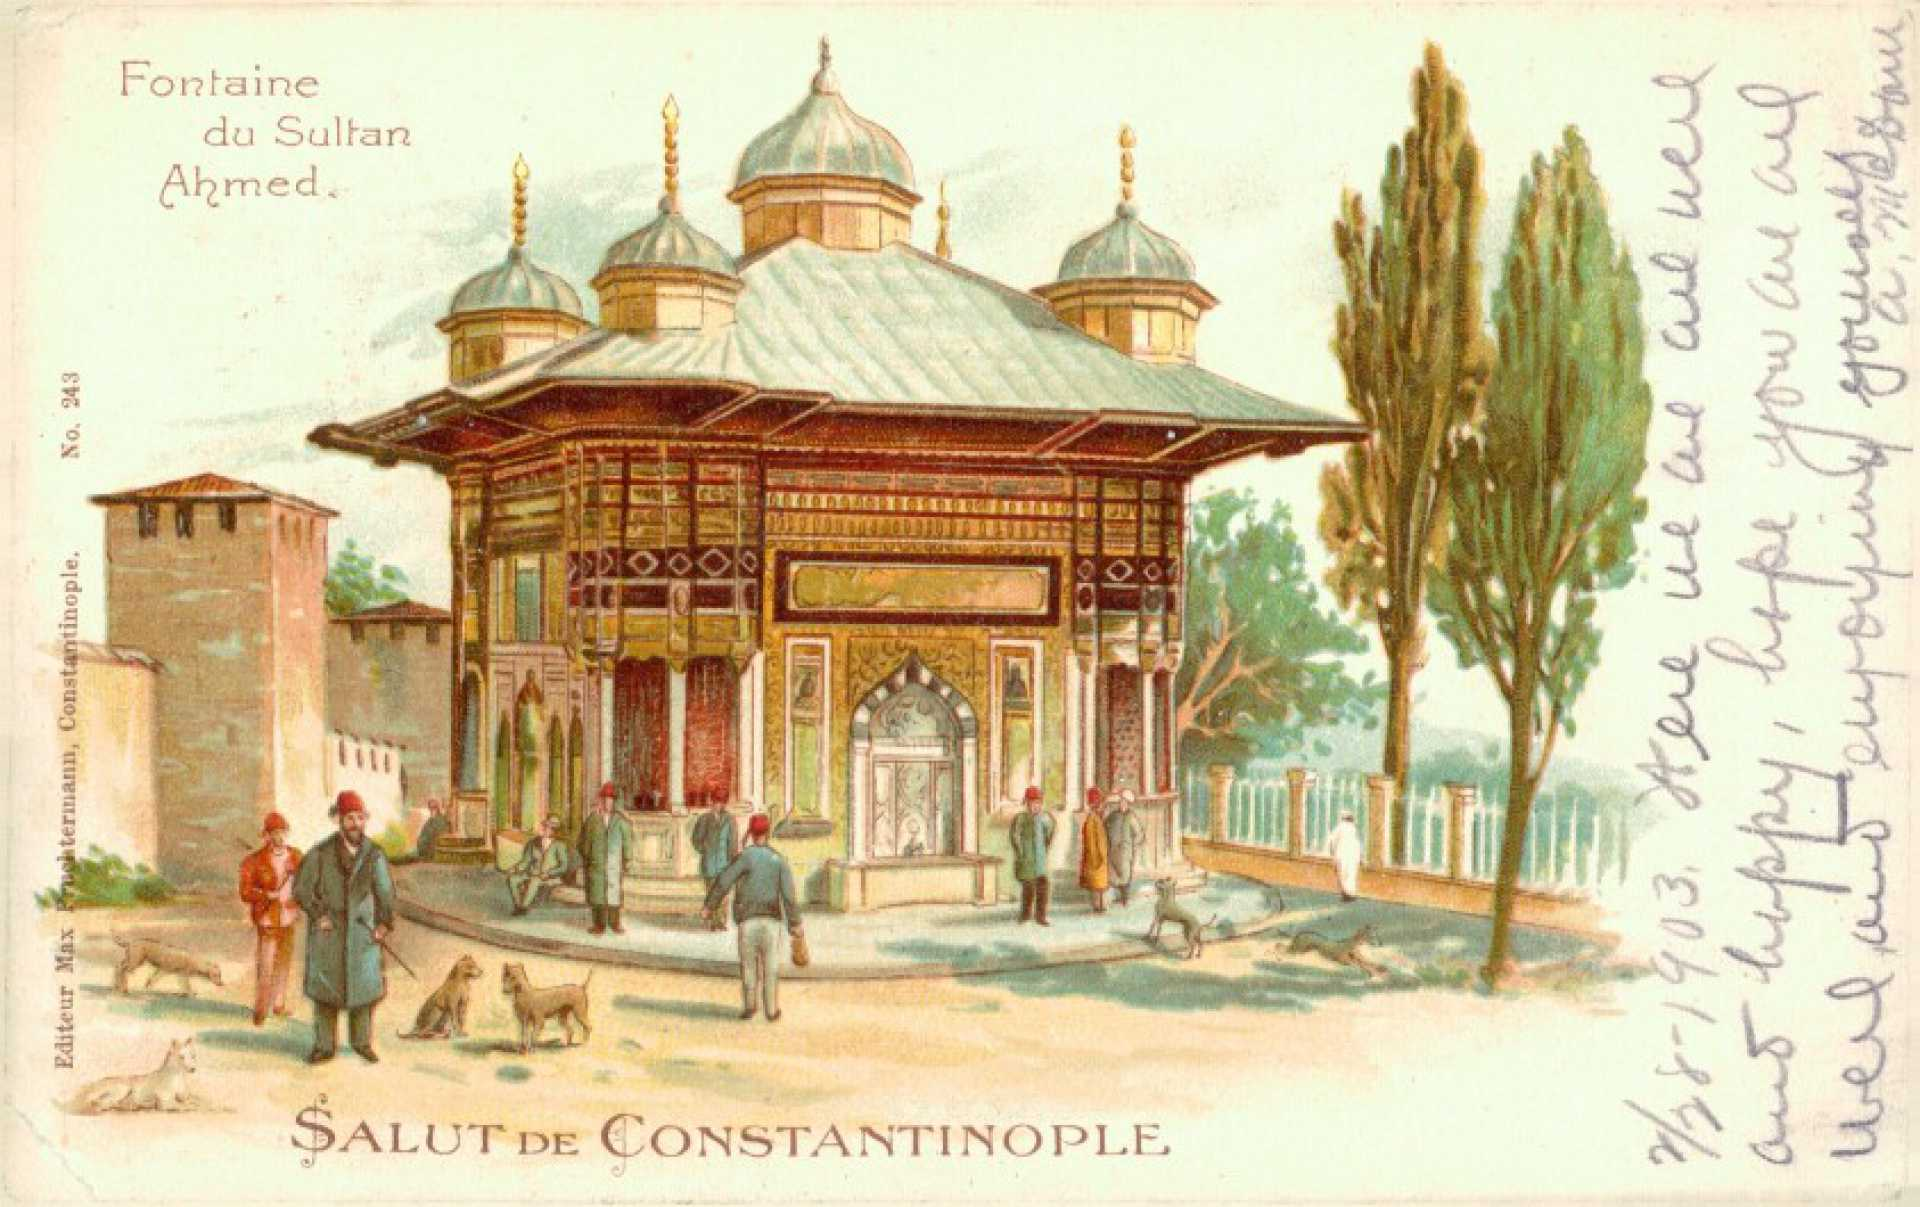 Salut de Constantinople. Fontaine du Sultan Ahmed